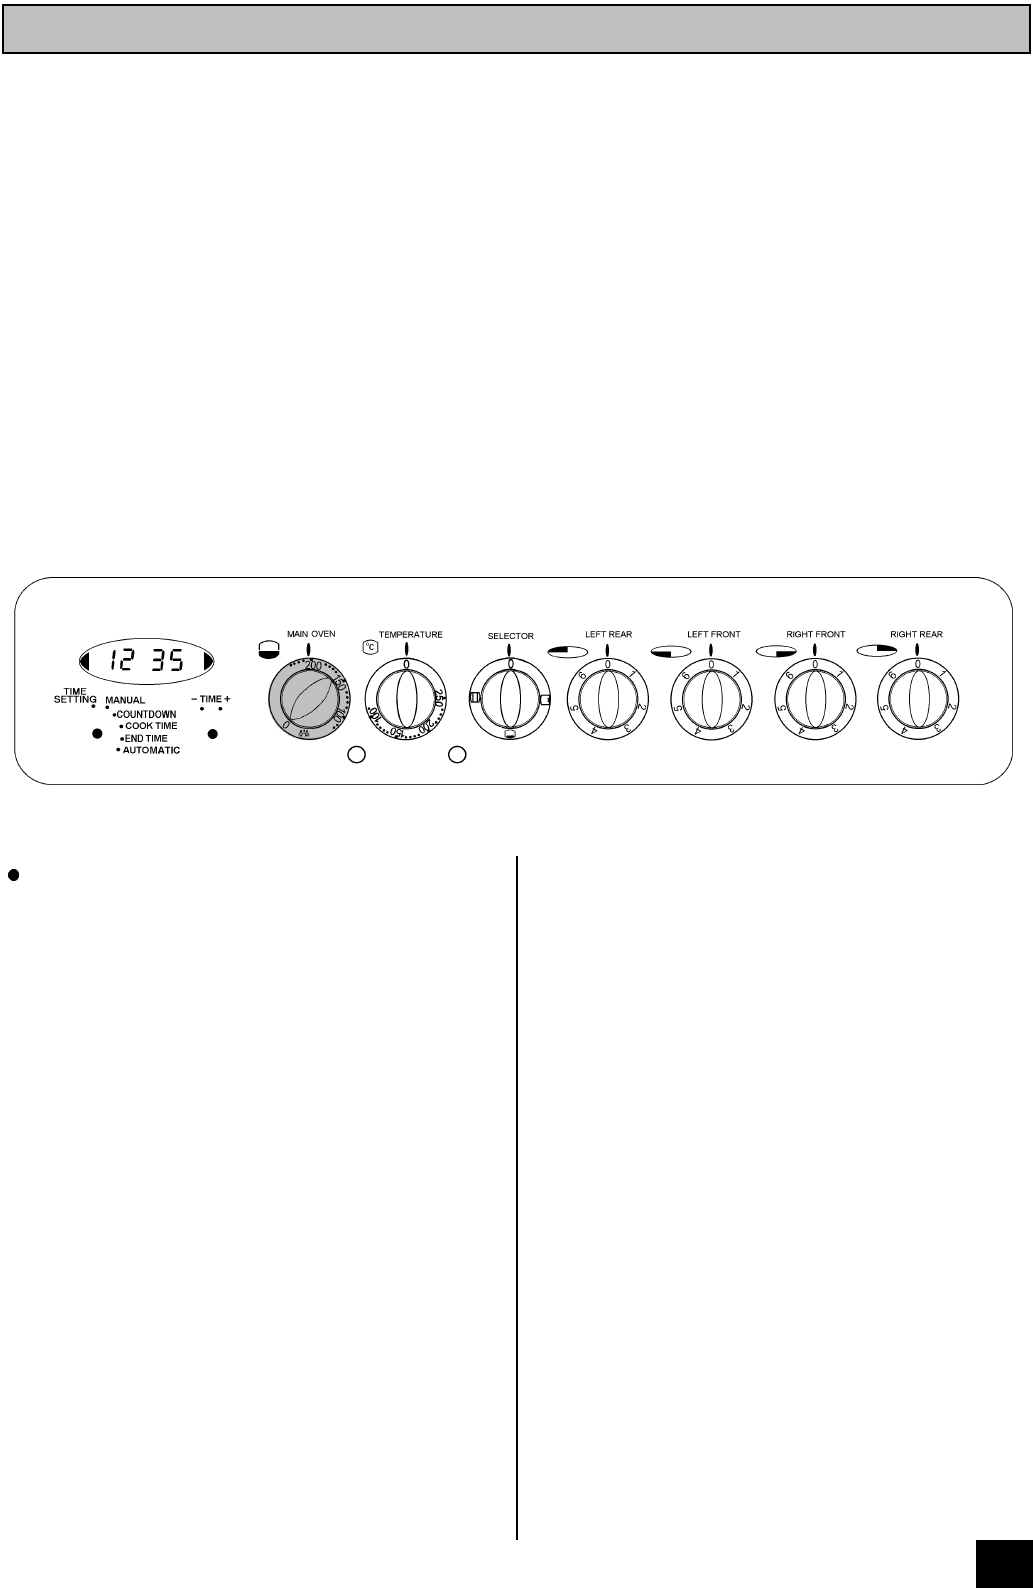 Conventional oven setting symbol best oven 2017 search indesit user manuals biocorpaavc Choice Image